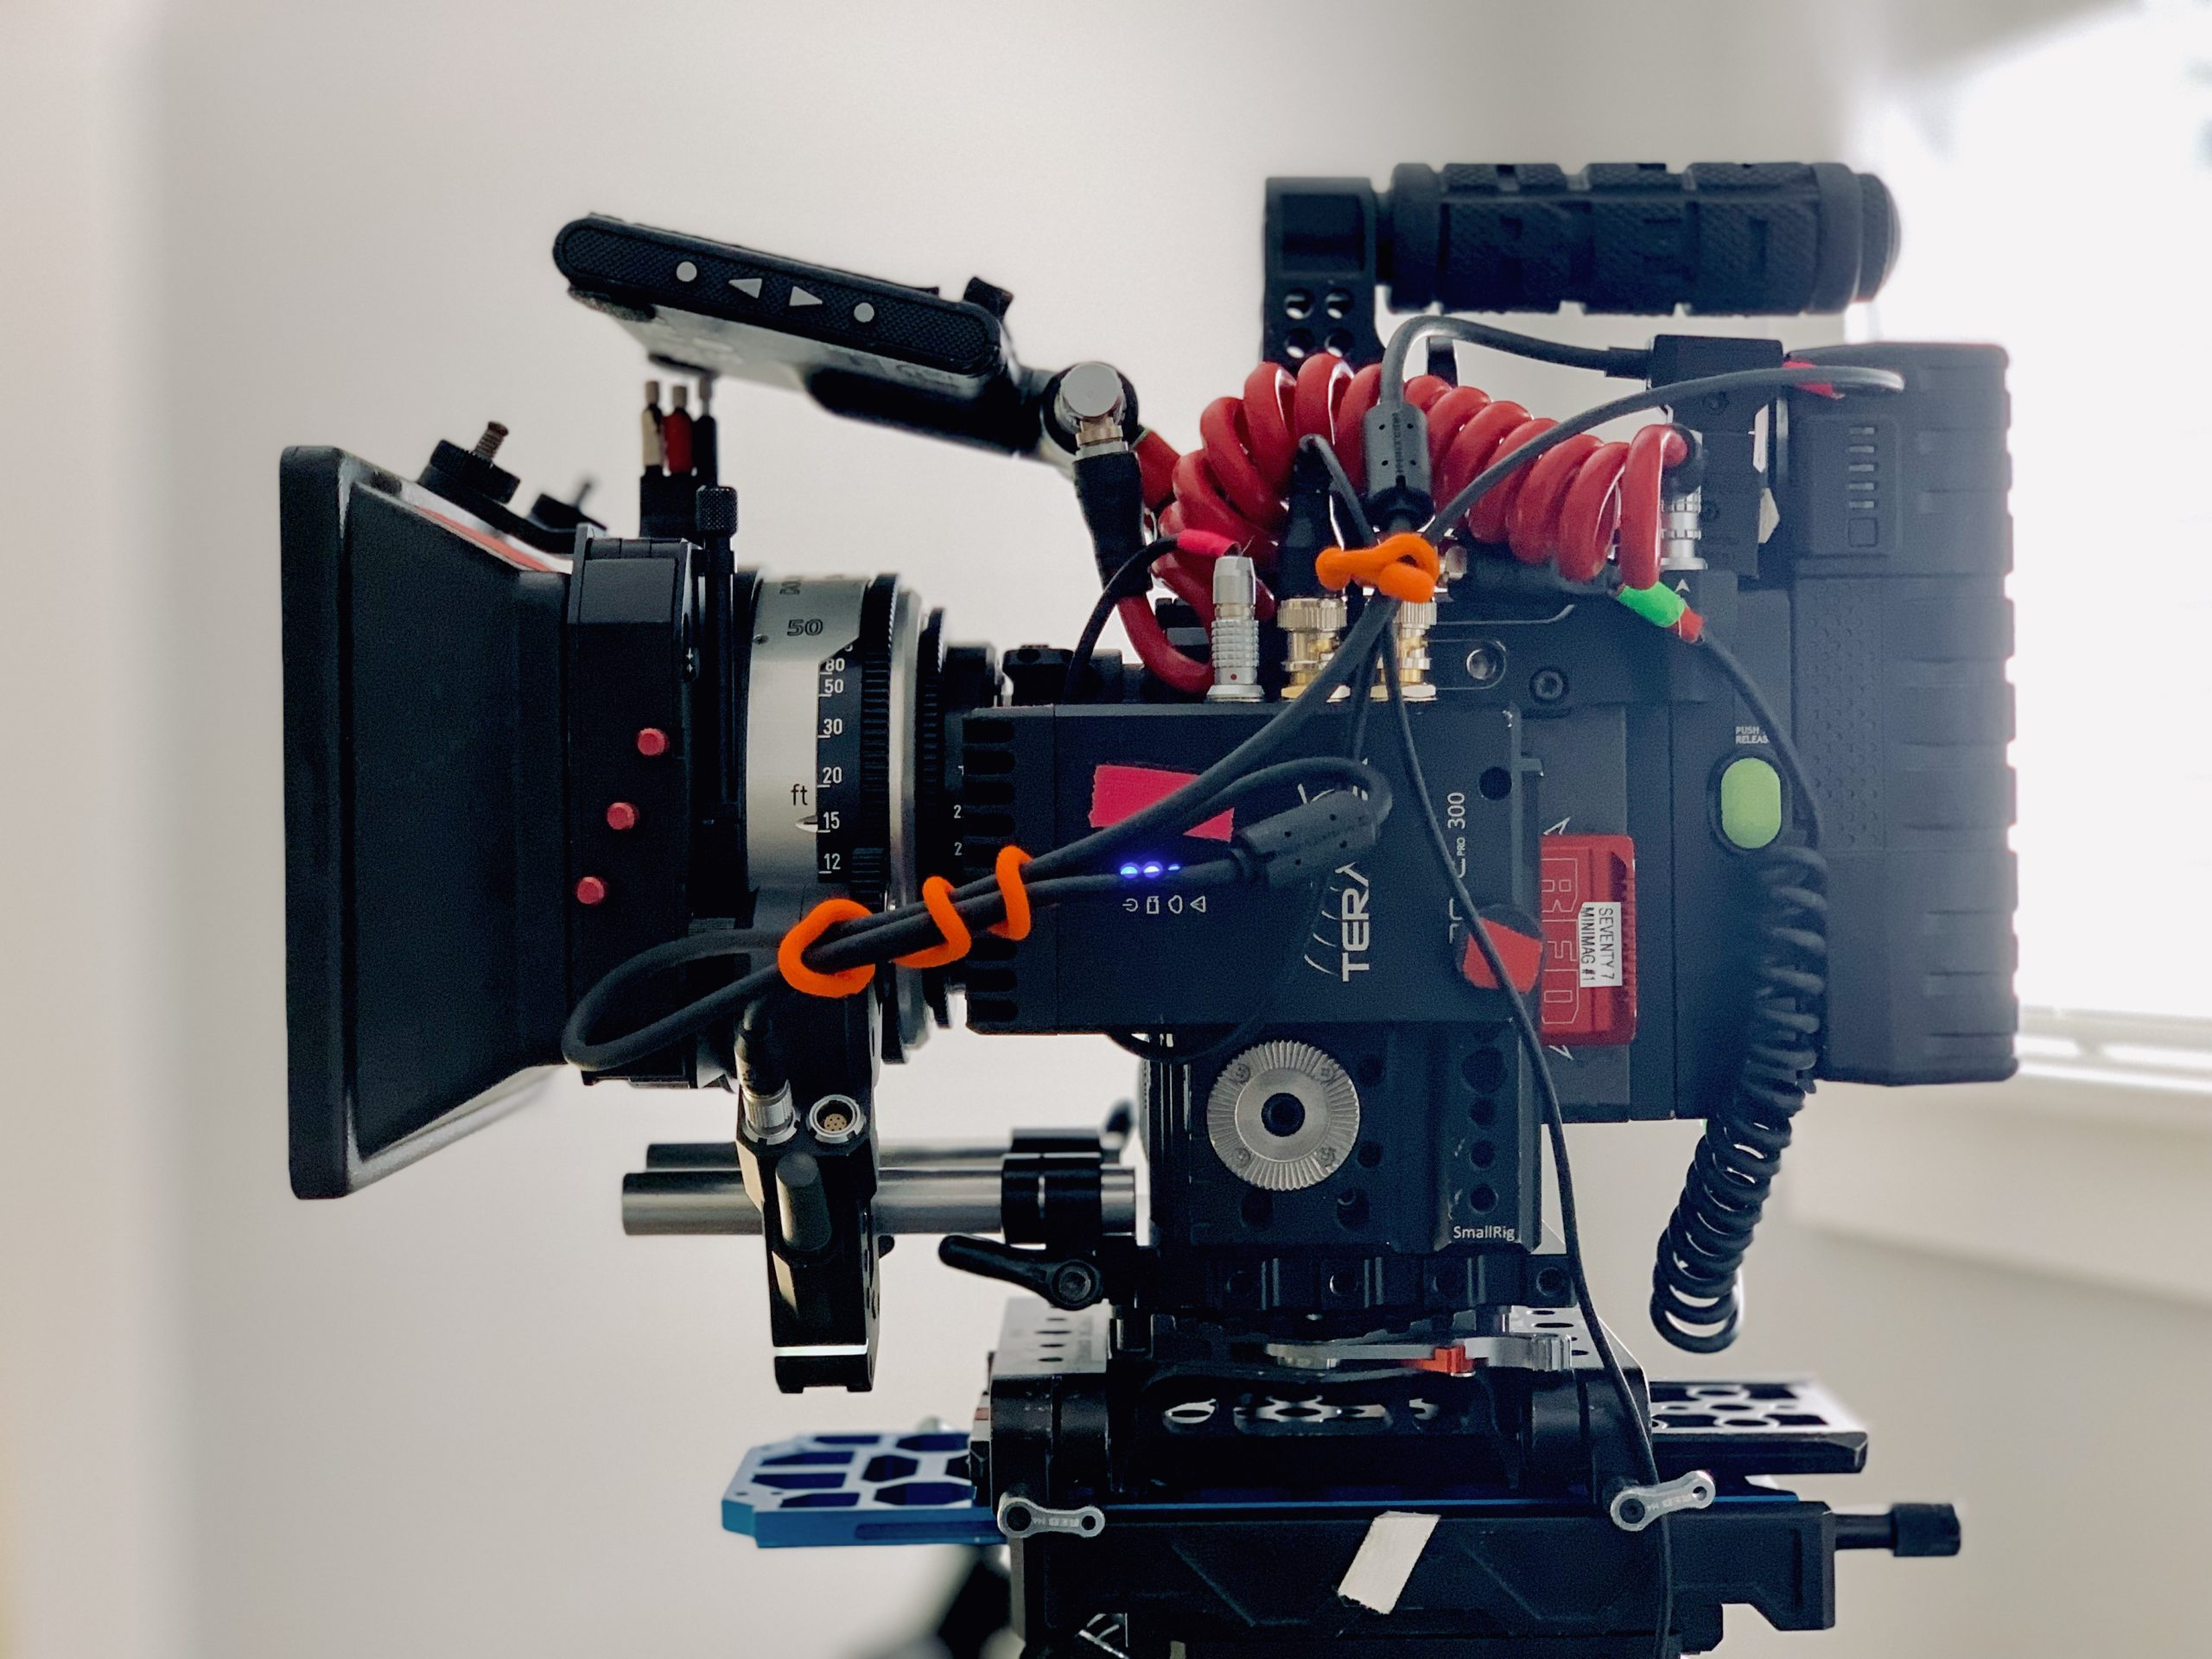 Cooke Double Speed Panchro, camera / light & grip rental, red, monstro, vv, 8k, camera rental, detroit based production company, film camera rental